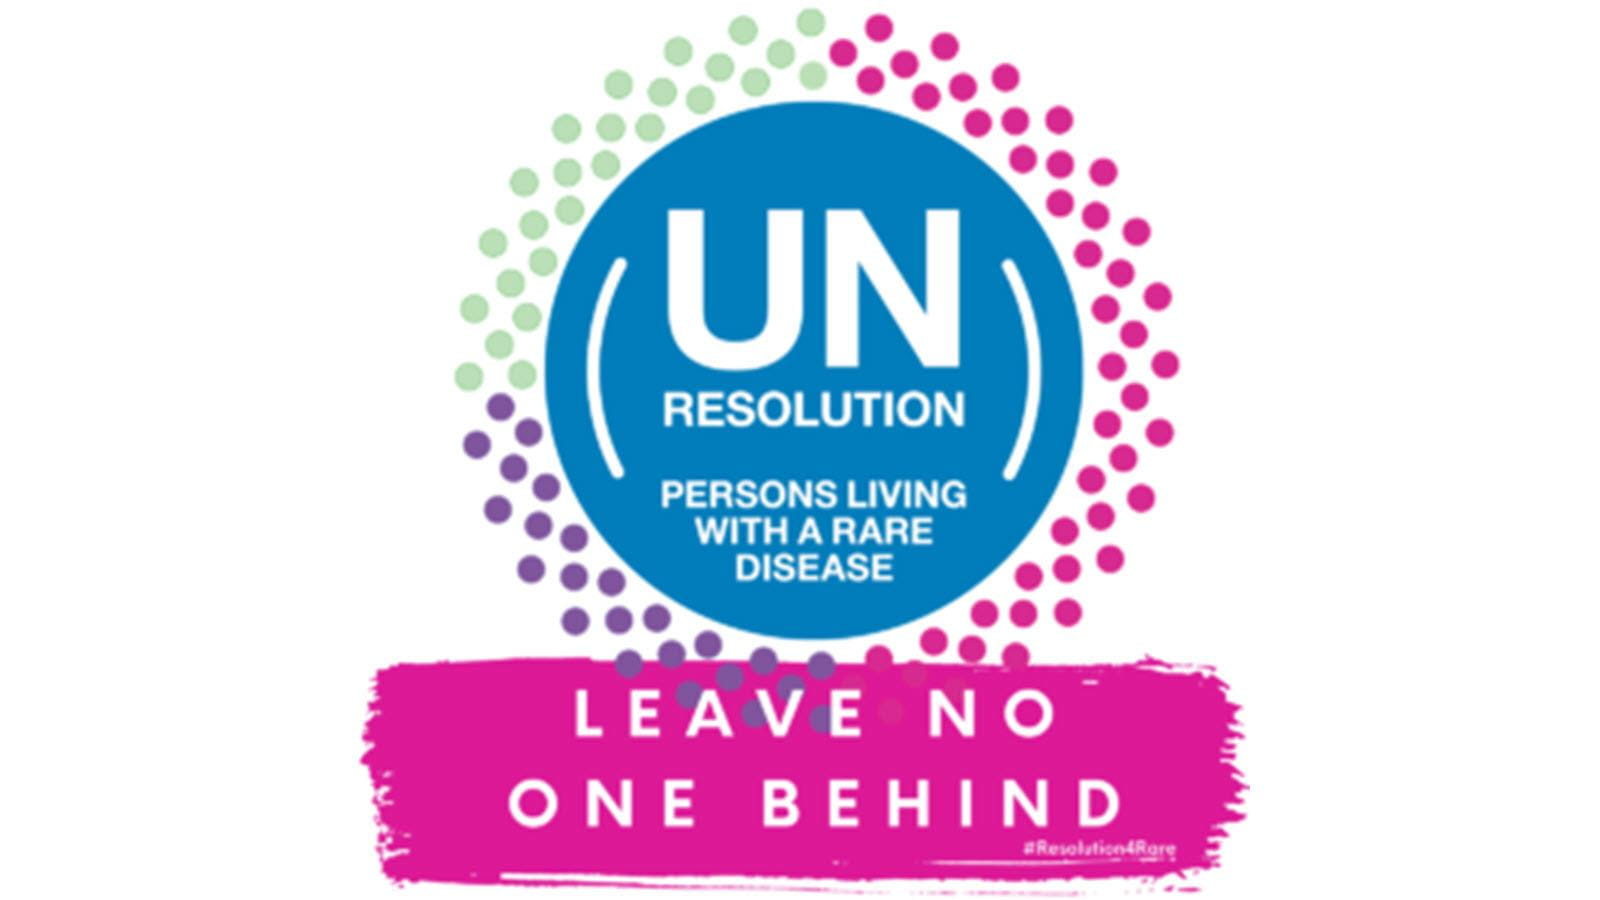 UN resolution graphic for persons with rare diseases - Leave no one behind